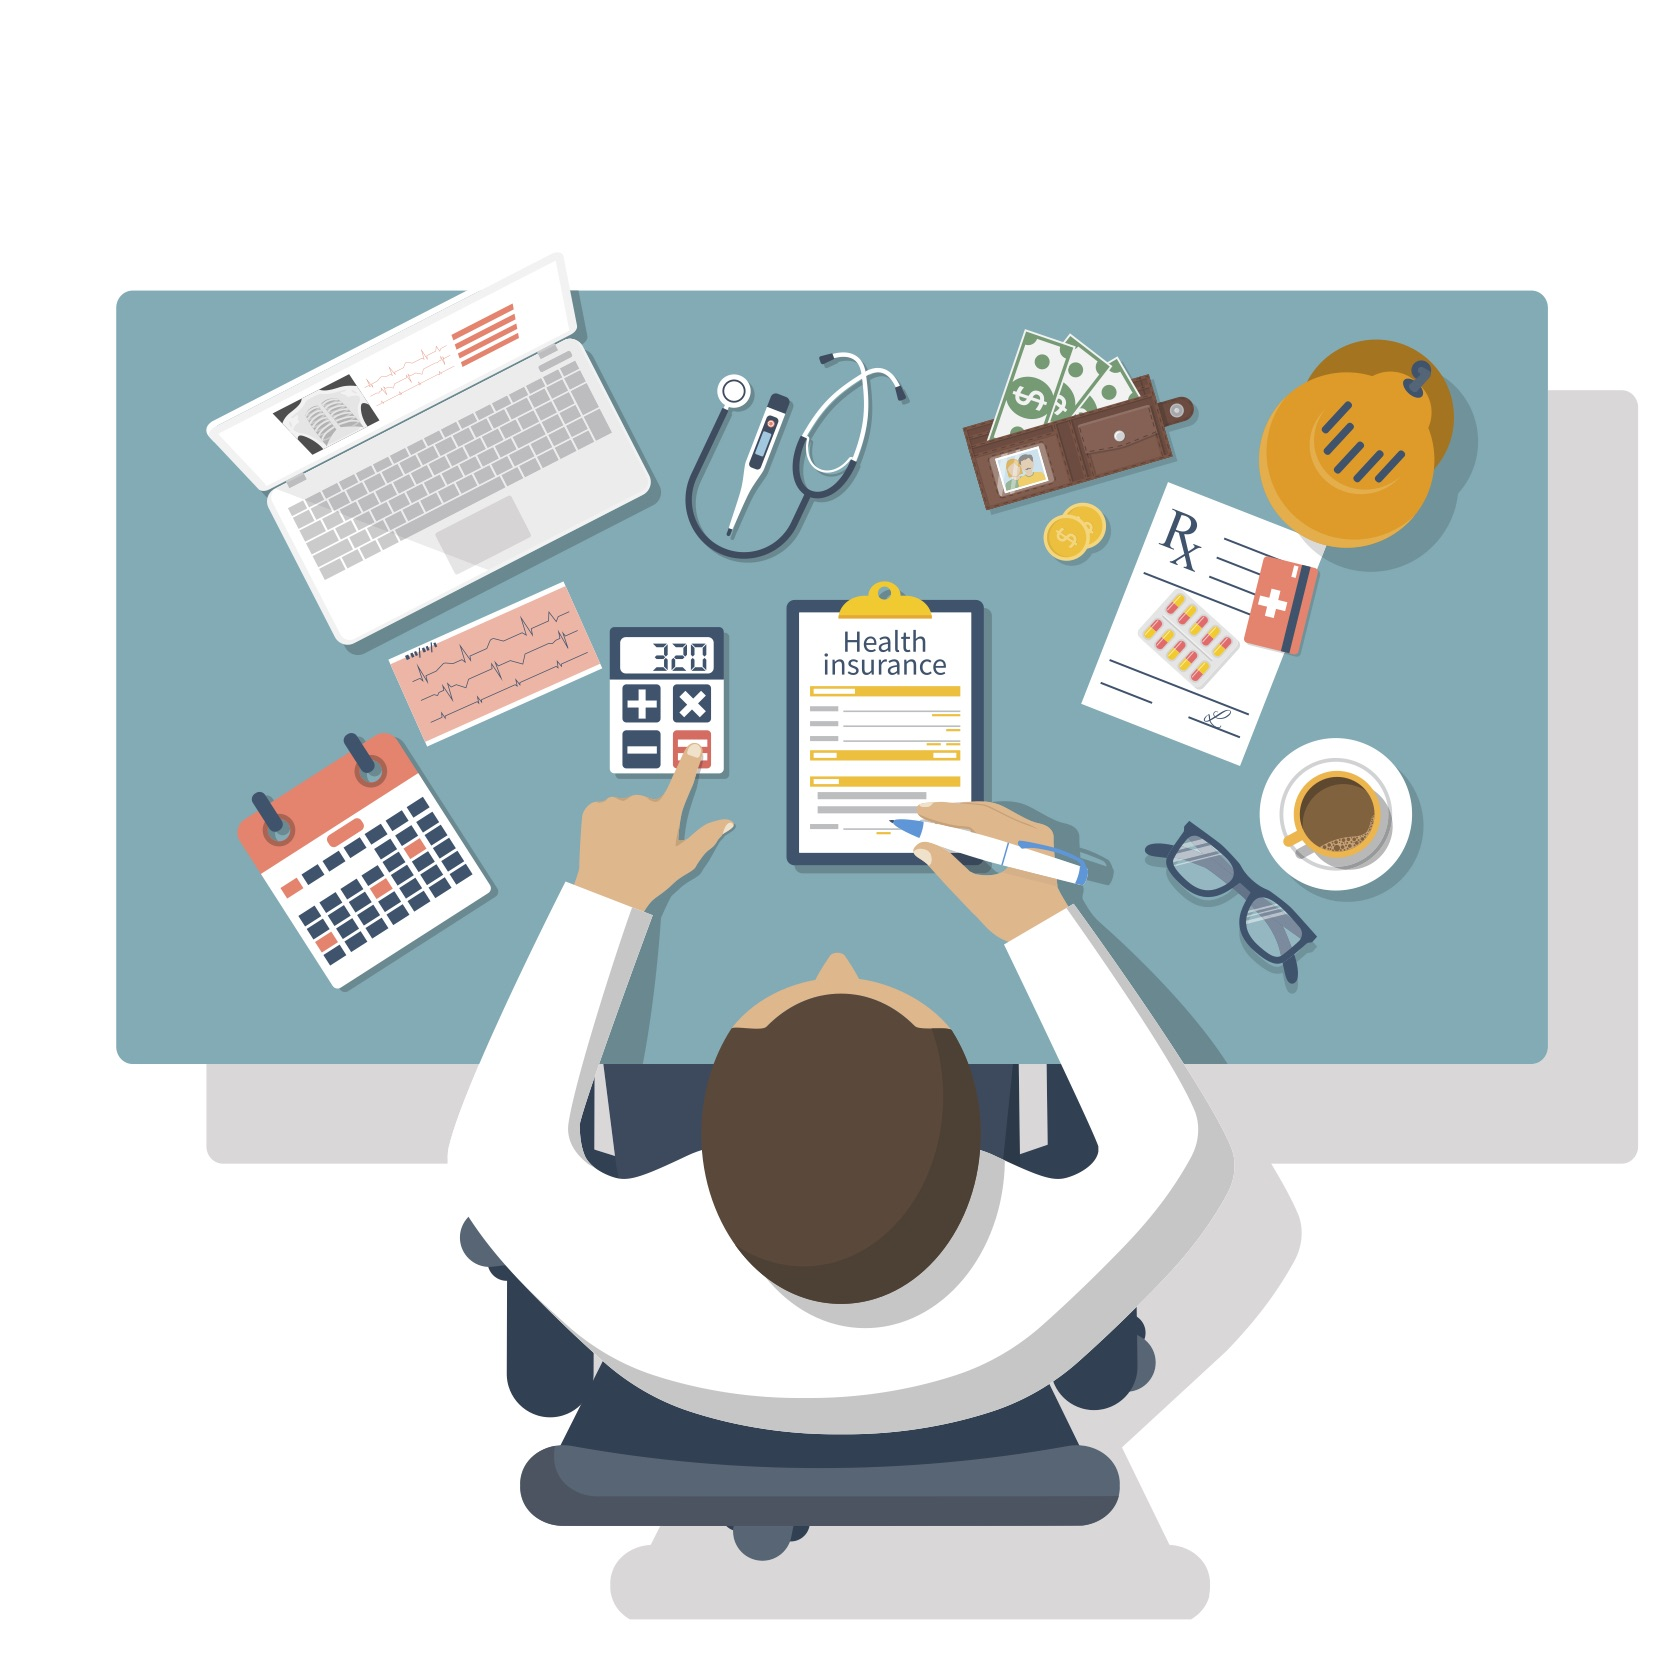 Medical Billing Services - Accounts Receivable, Contracting, Credentialing, Prior Notifications, Benefit Estimation and more...